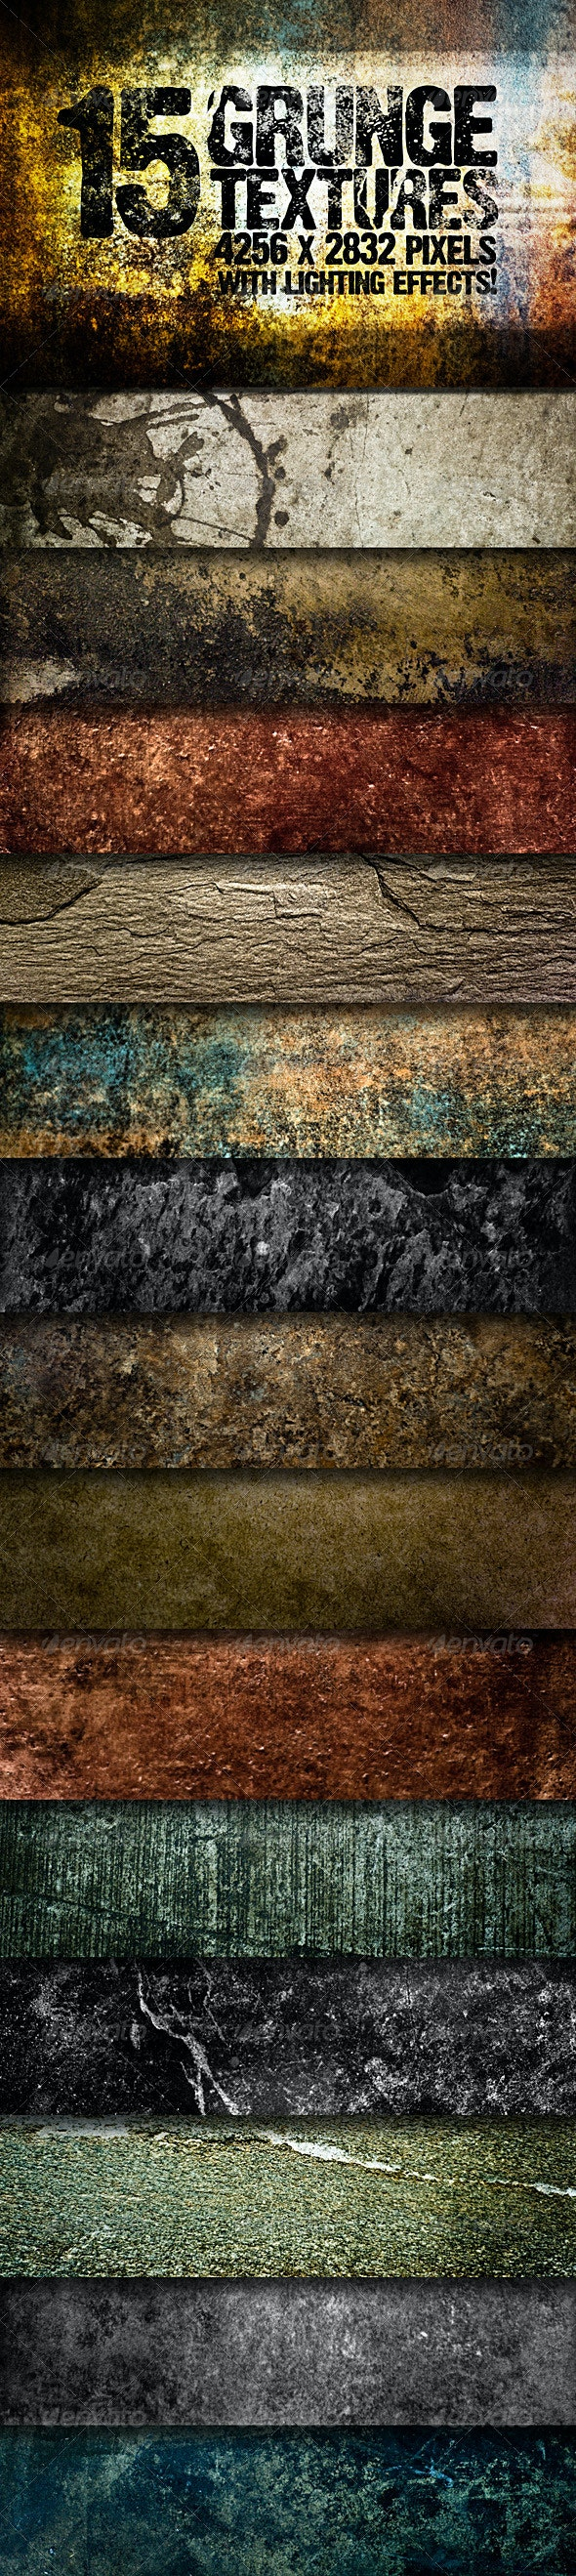 15 Grunge Textures with Lighting Effects! - Industrial / Grunge Textures